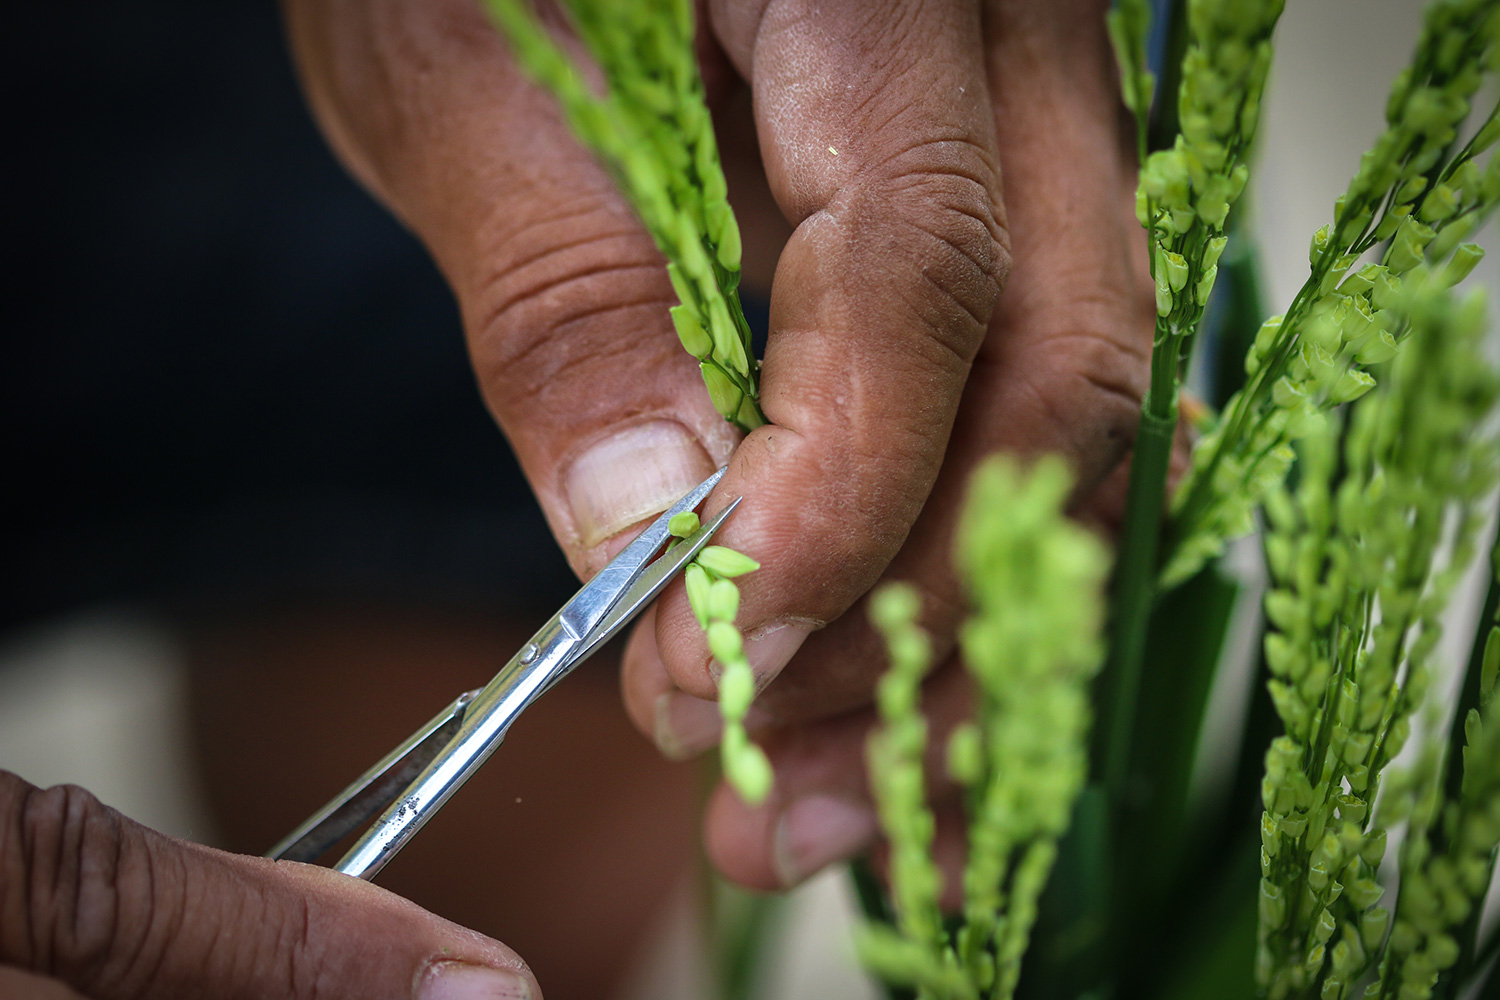 Hybrid rice review: Updating notions about hybrid rice